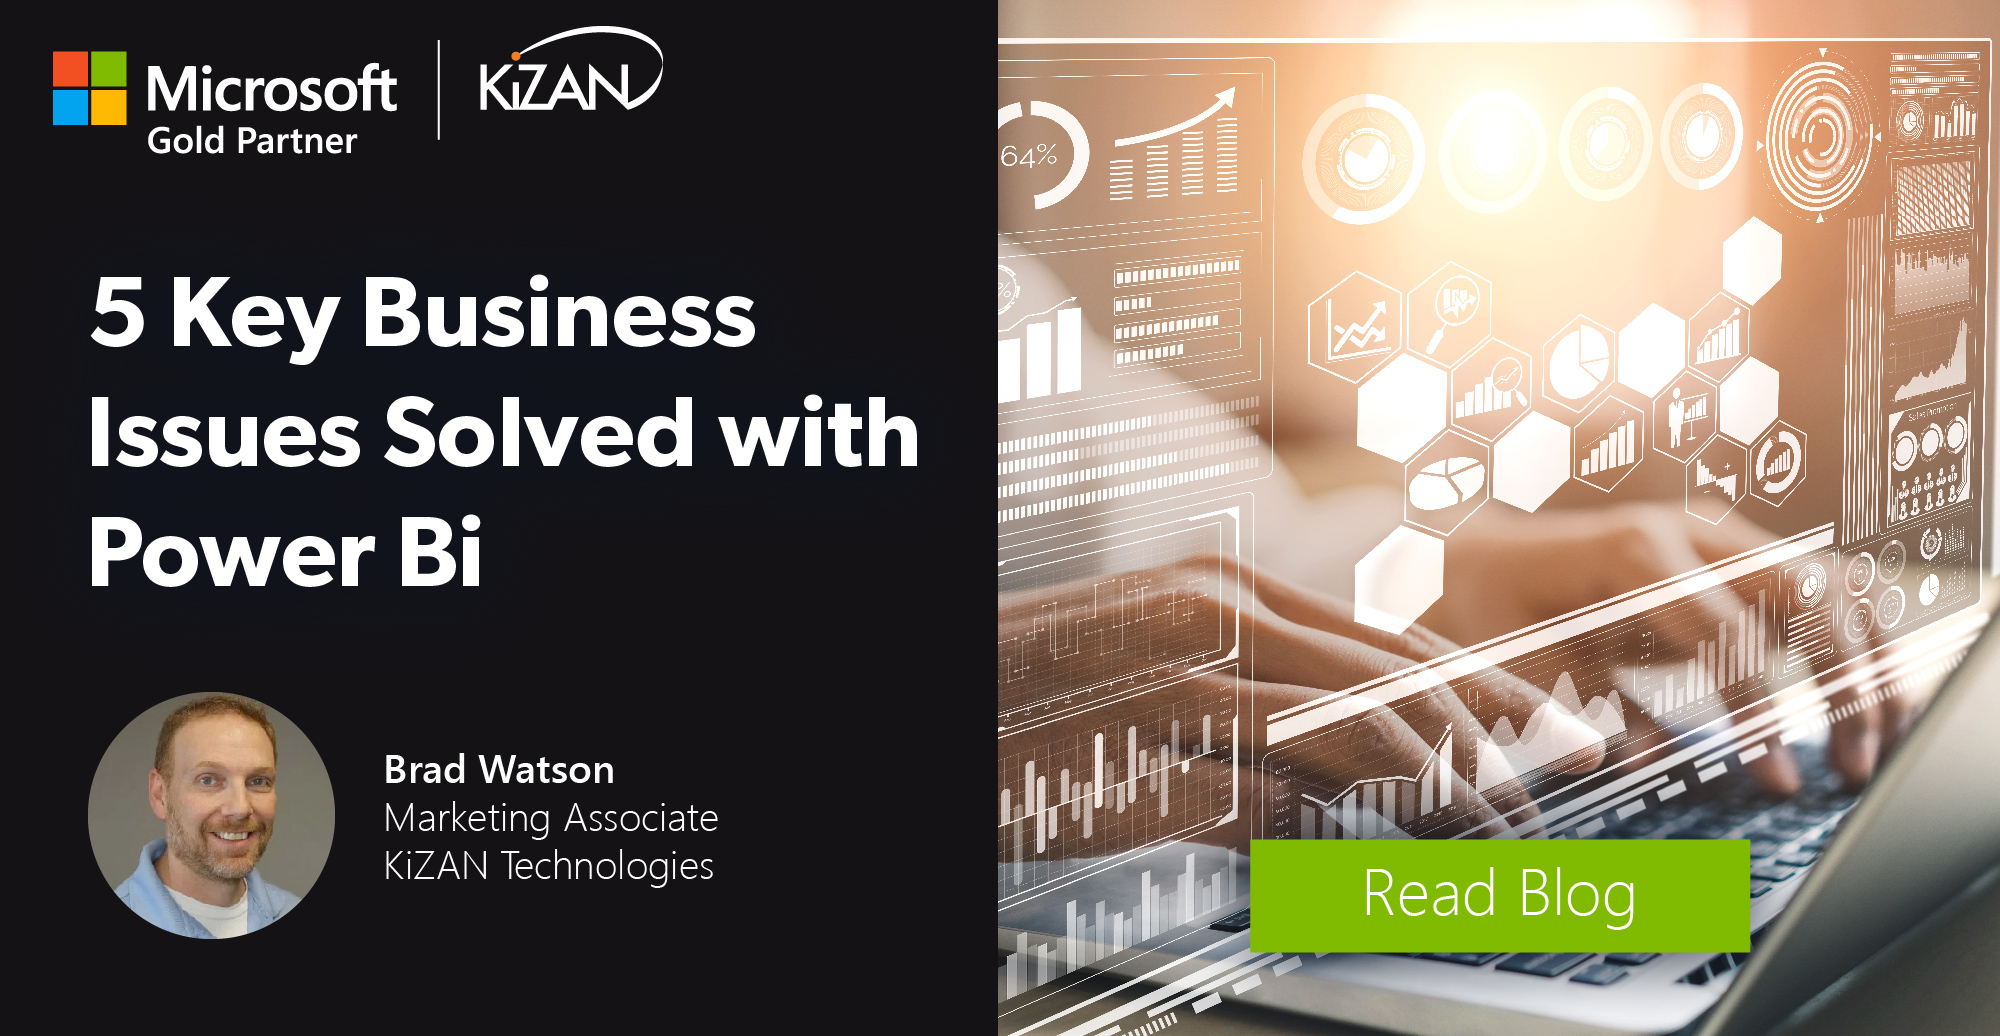 KiZAN | 5 Key Business Issues Solved With Power BI